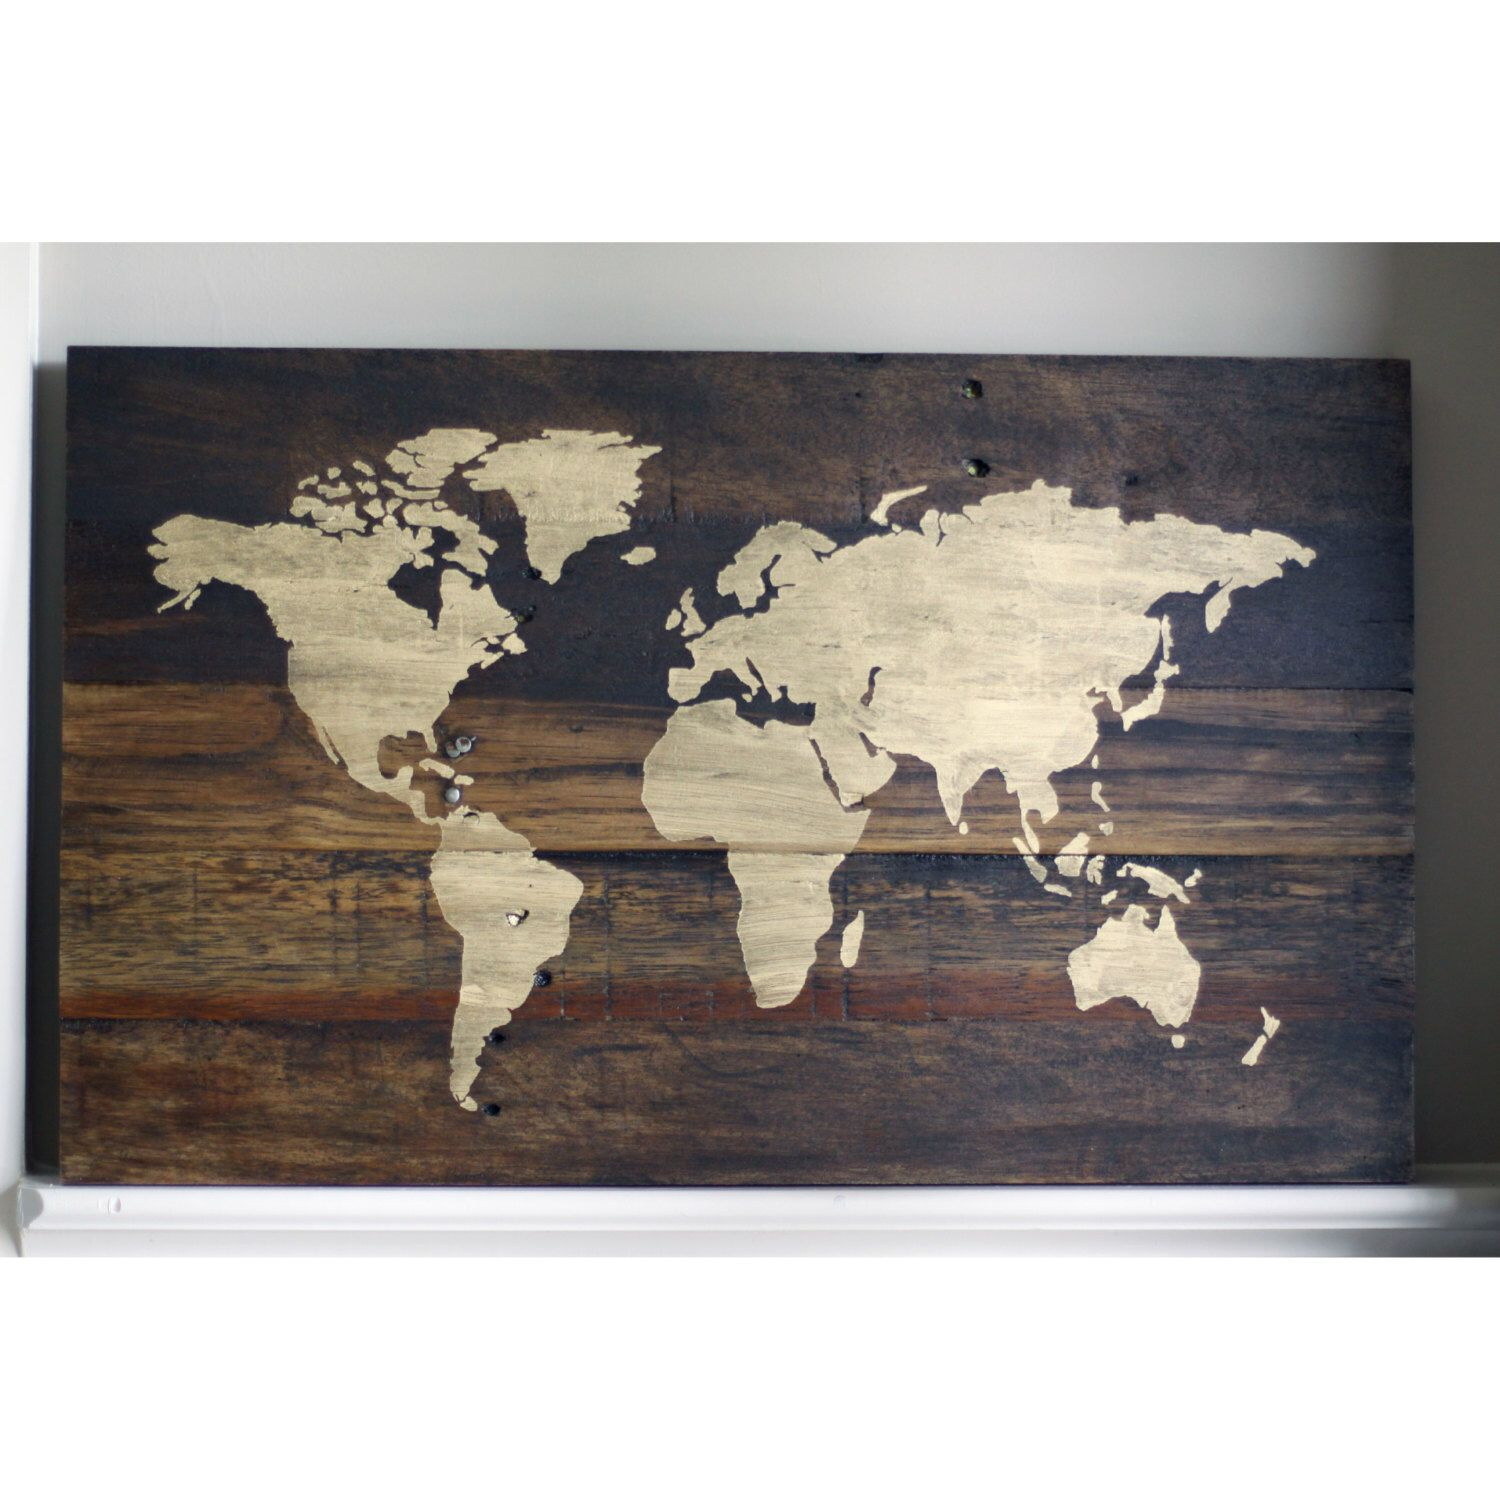 Rustic world map wood sign with upgrade by hammerandlaceinc on etsy rustic world map wood sign with upgrade by hammerandlaceinc on etsy httpswww gumiabroncs Image collections